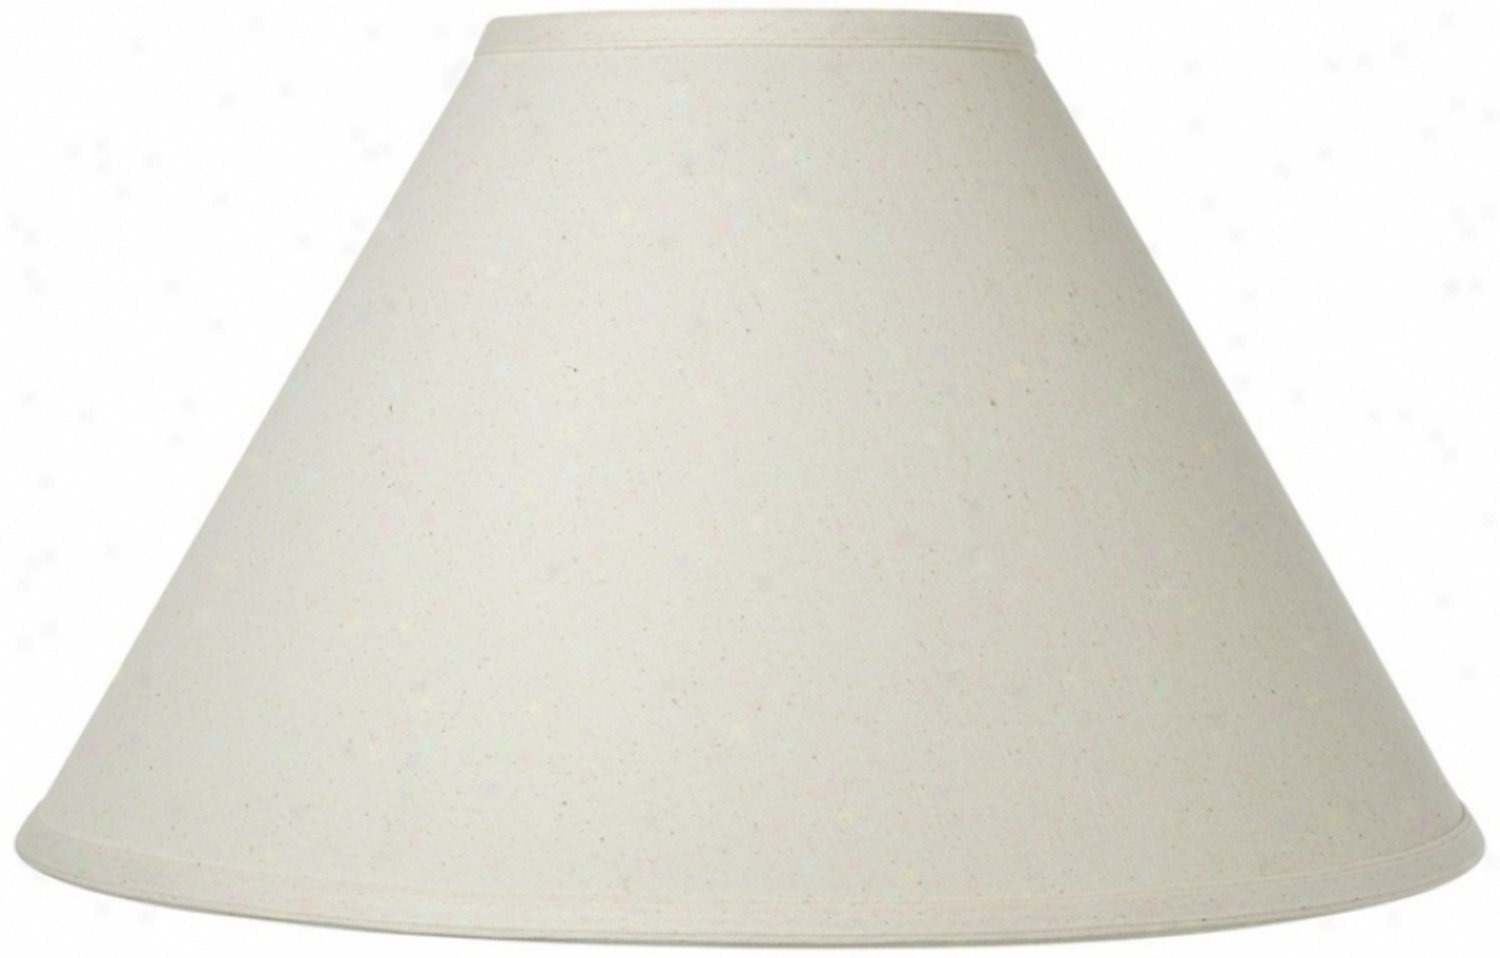 Upgradelights Off White Linen 12 Inch Chimney Style For Hurricane & Oil Lamp Shade Replacement (4x12x7)